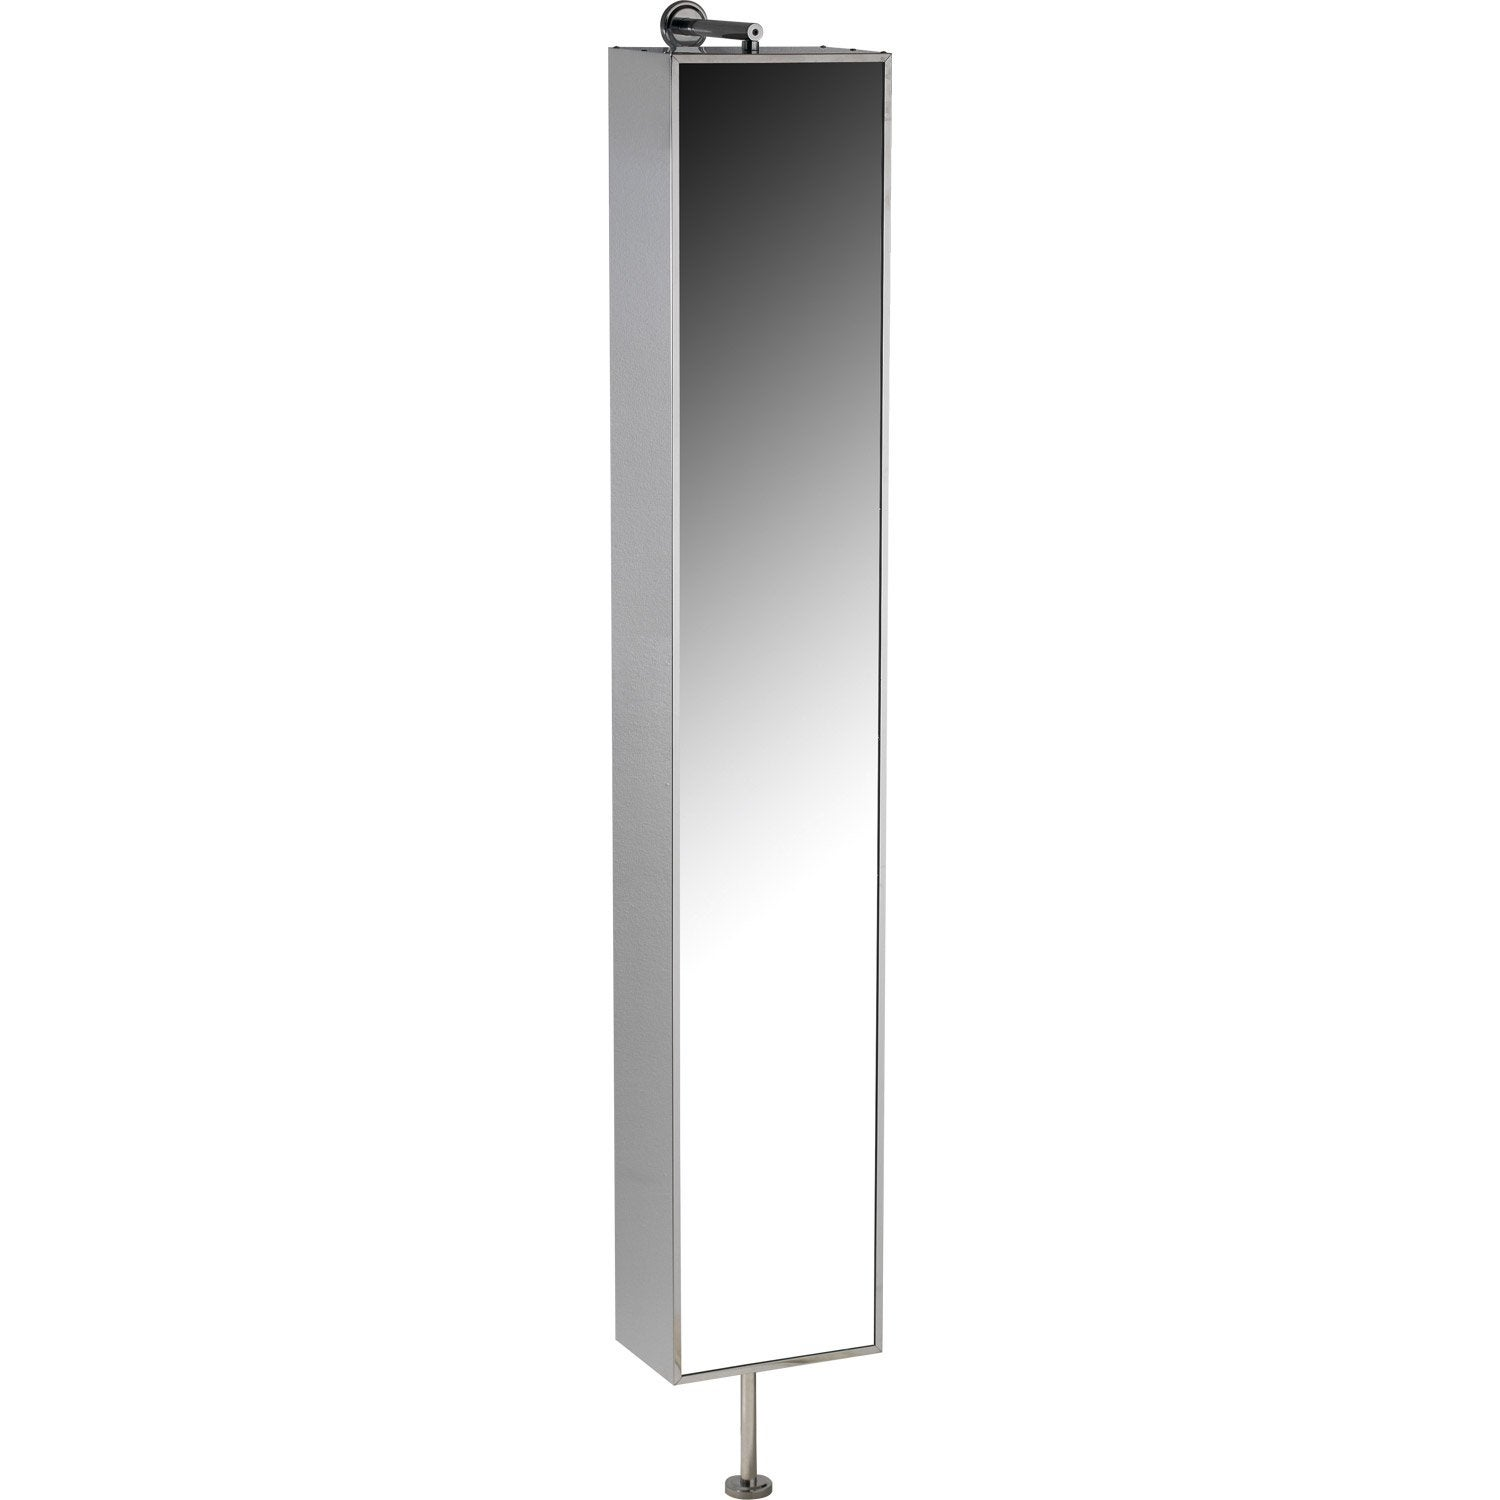 Meuble toilette leroy merlin id es de conception sont int r - Meuble toilette leroy merlin ...